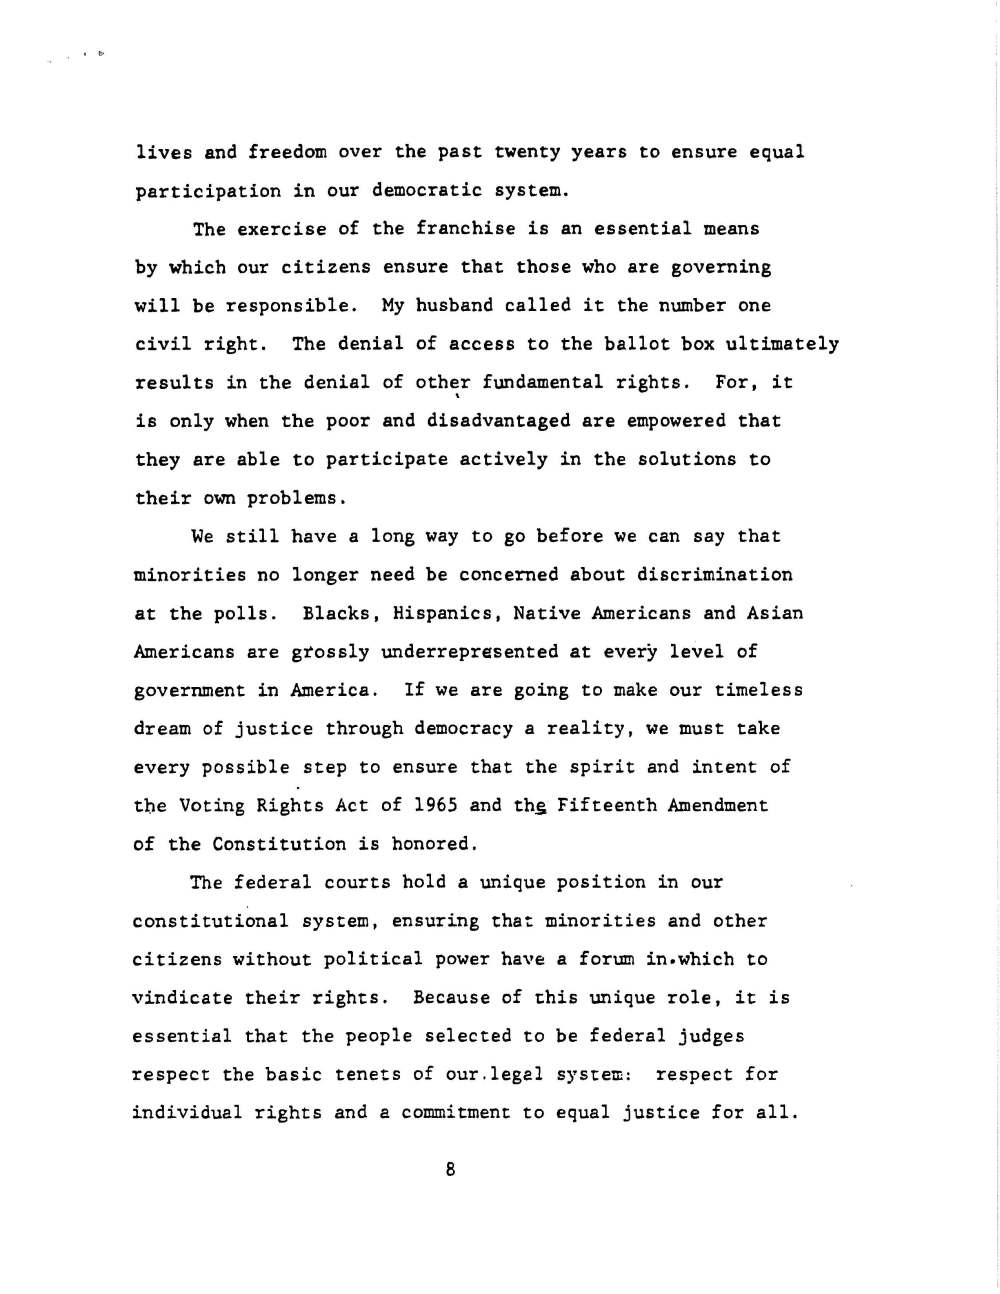 scott-king-1986-letter-and-testimony-signed_page_09